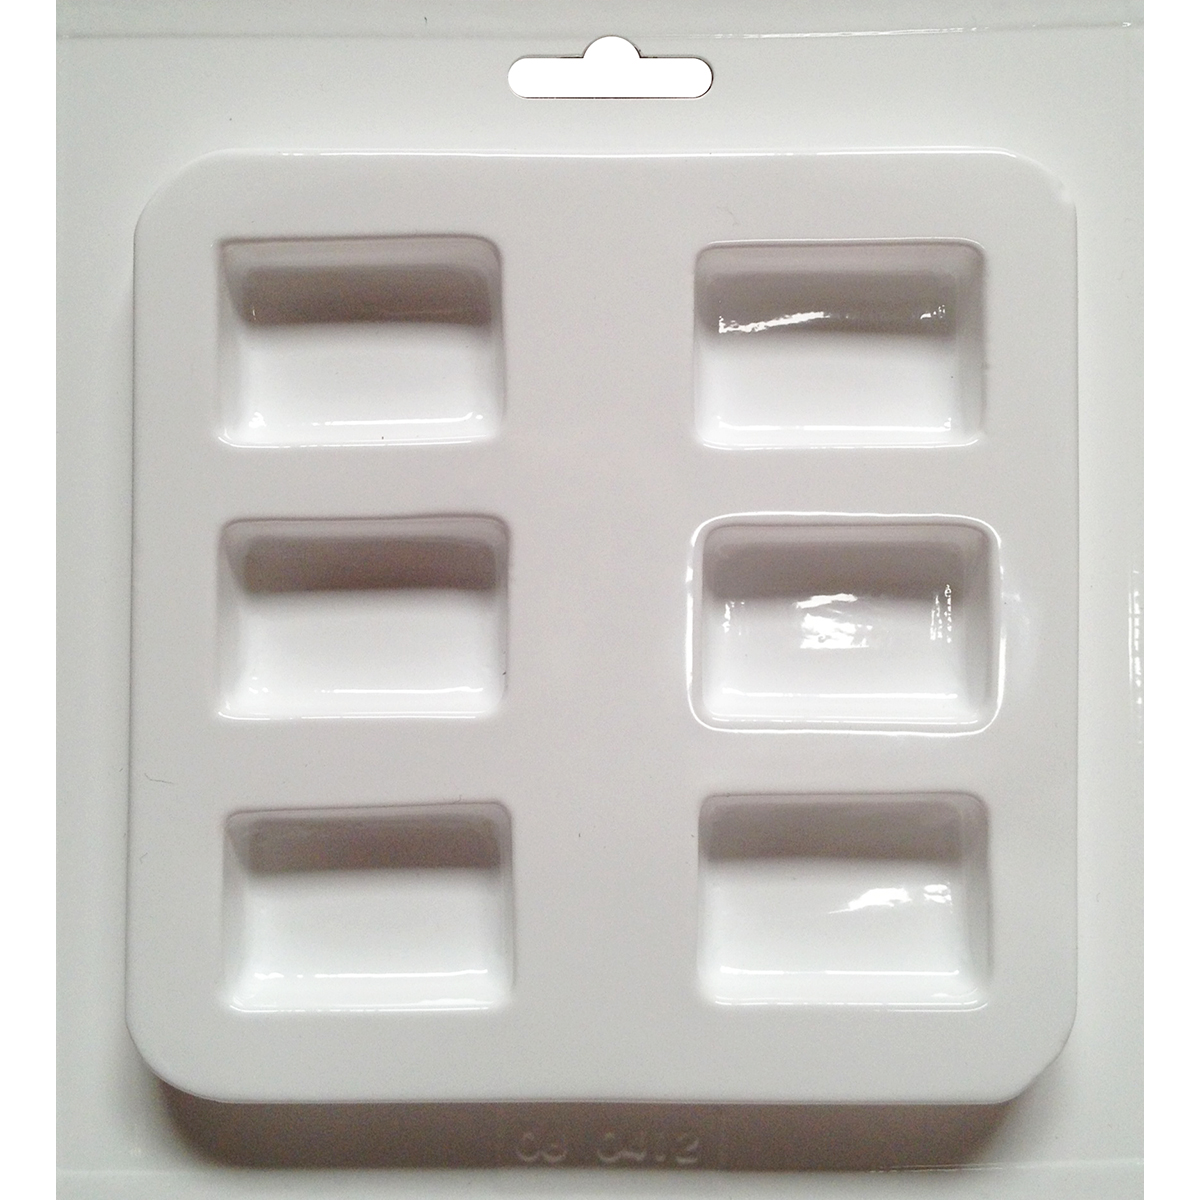 Yaley Candle Crafting Cool2Cast Mold Rectangles